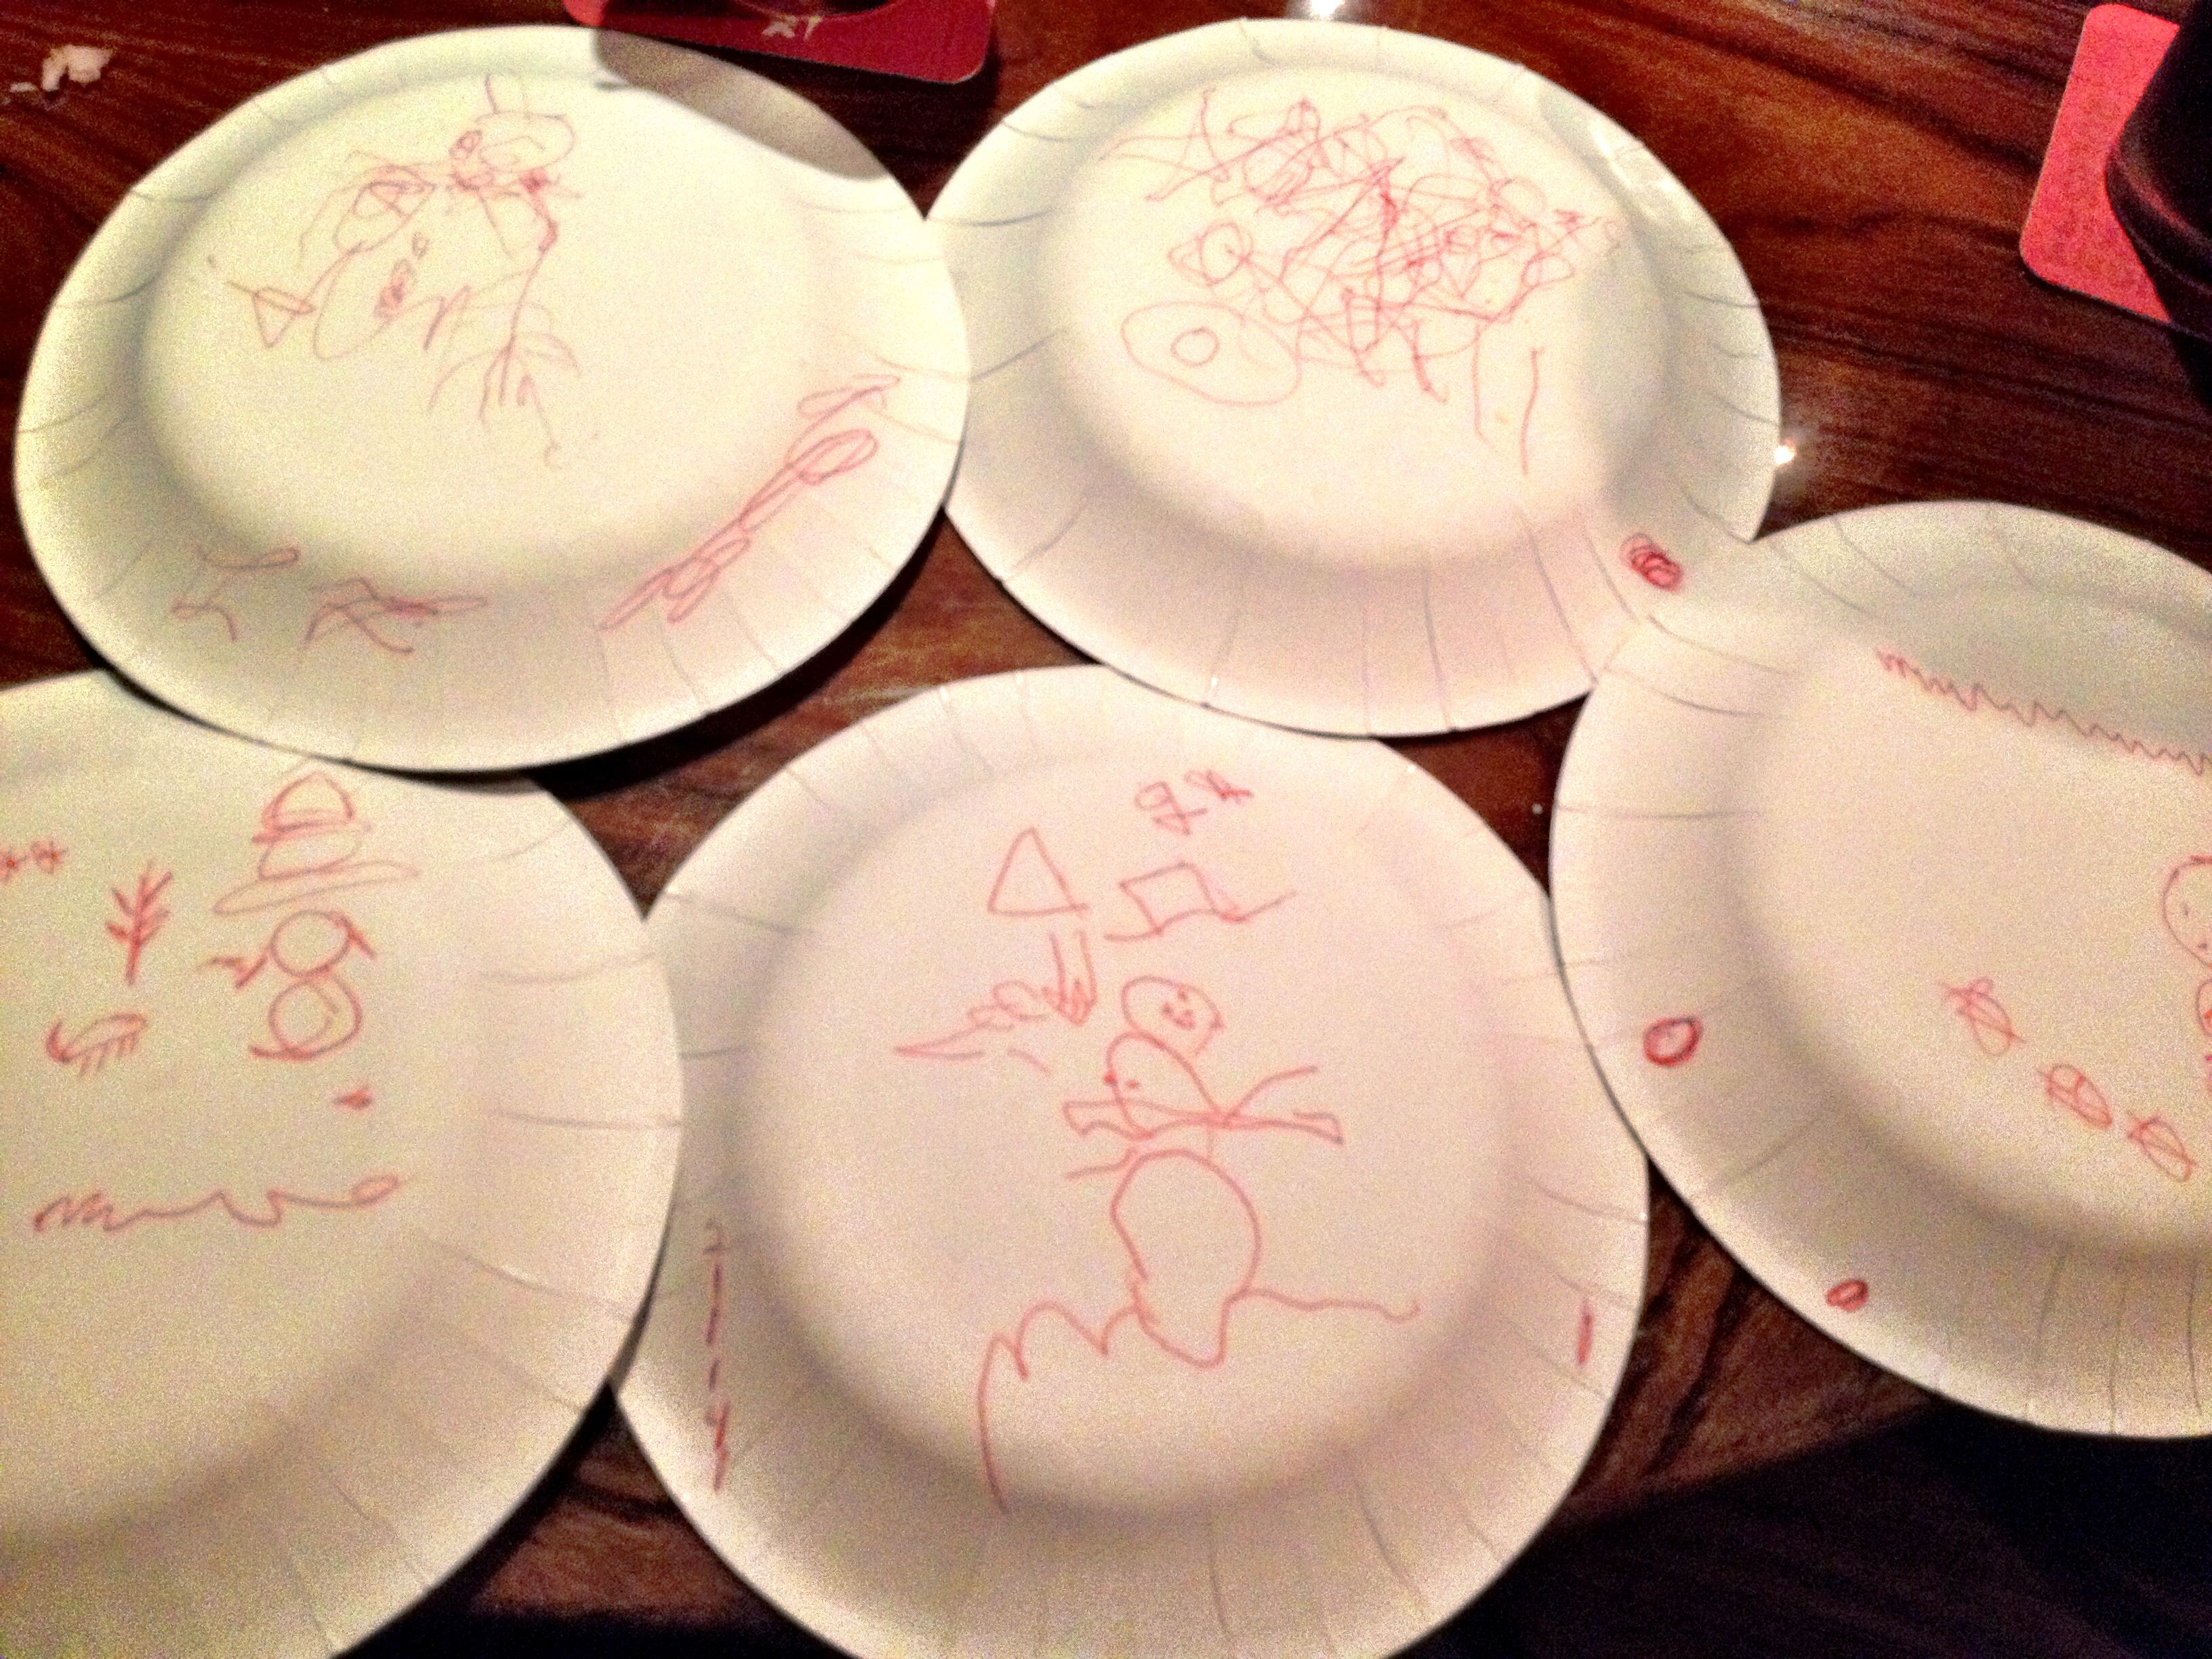 Christmas Game Of Following Instructions To Draw A Snowman While The Plate Is Over Your Head Christmas Games Draw A Snowman Christmas